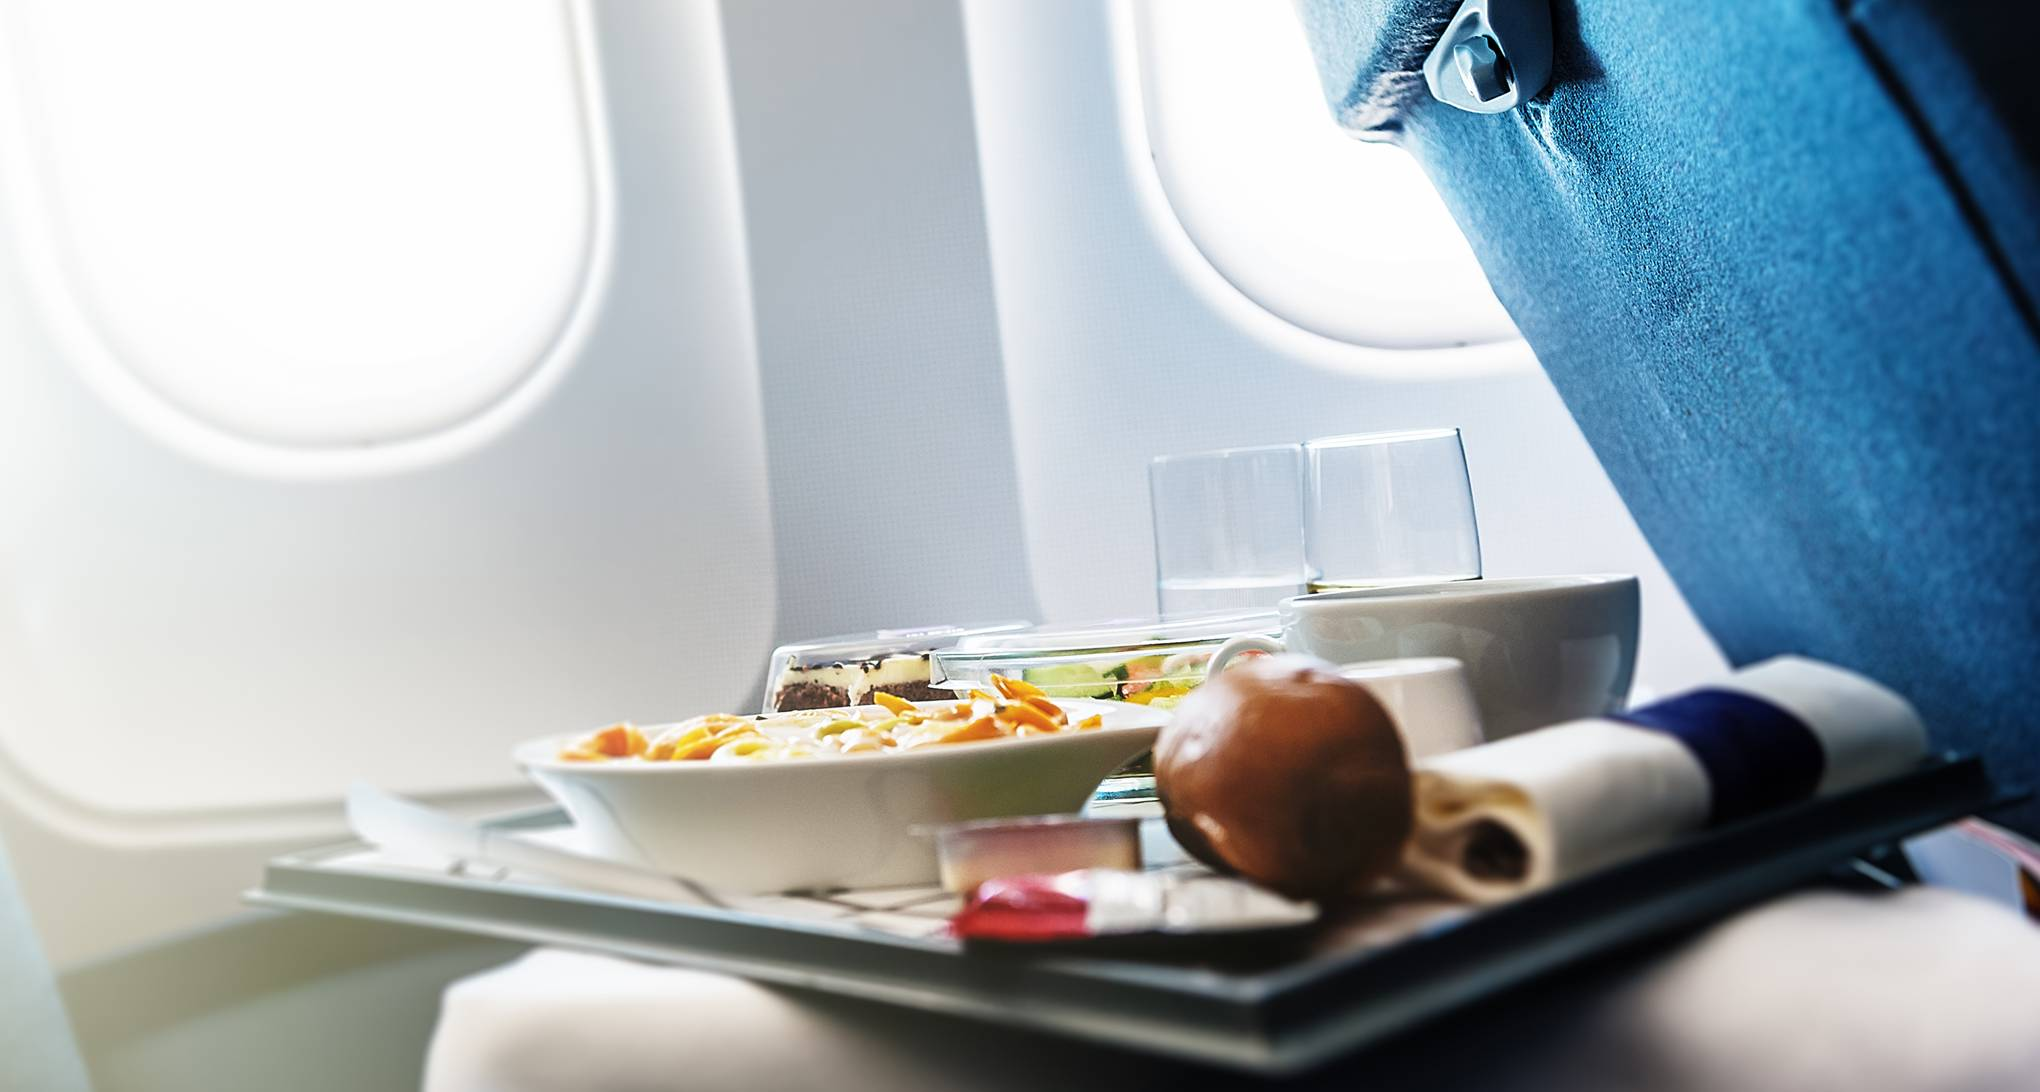 Can you ask for seconds of your in-flight meal?